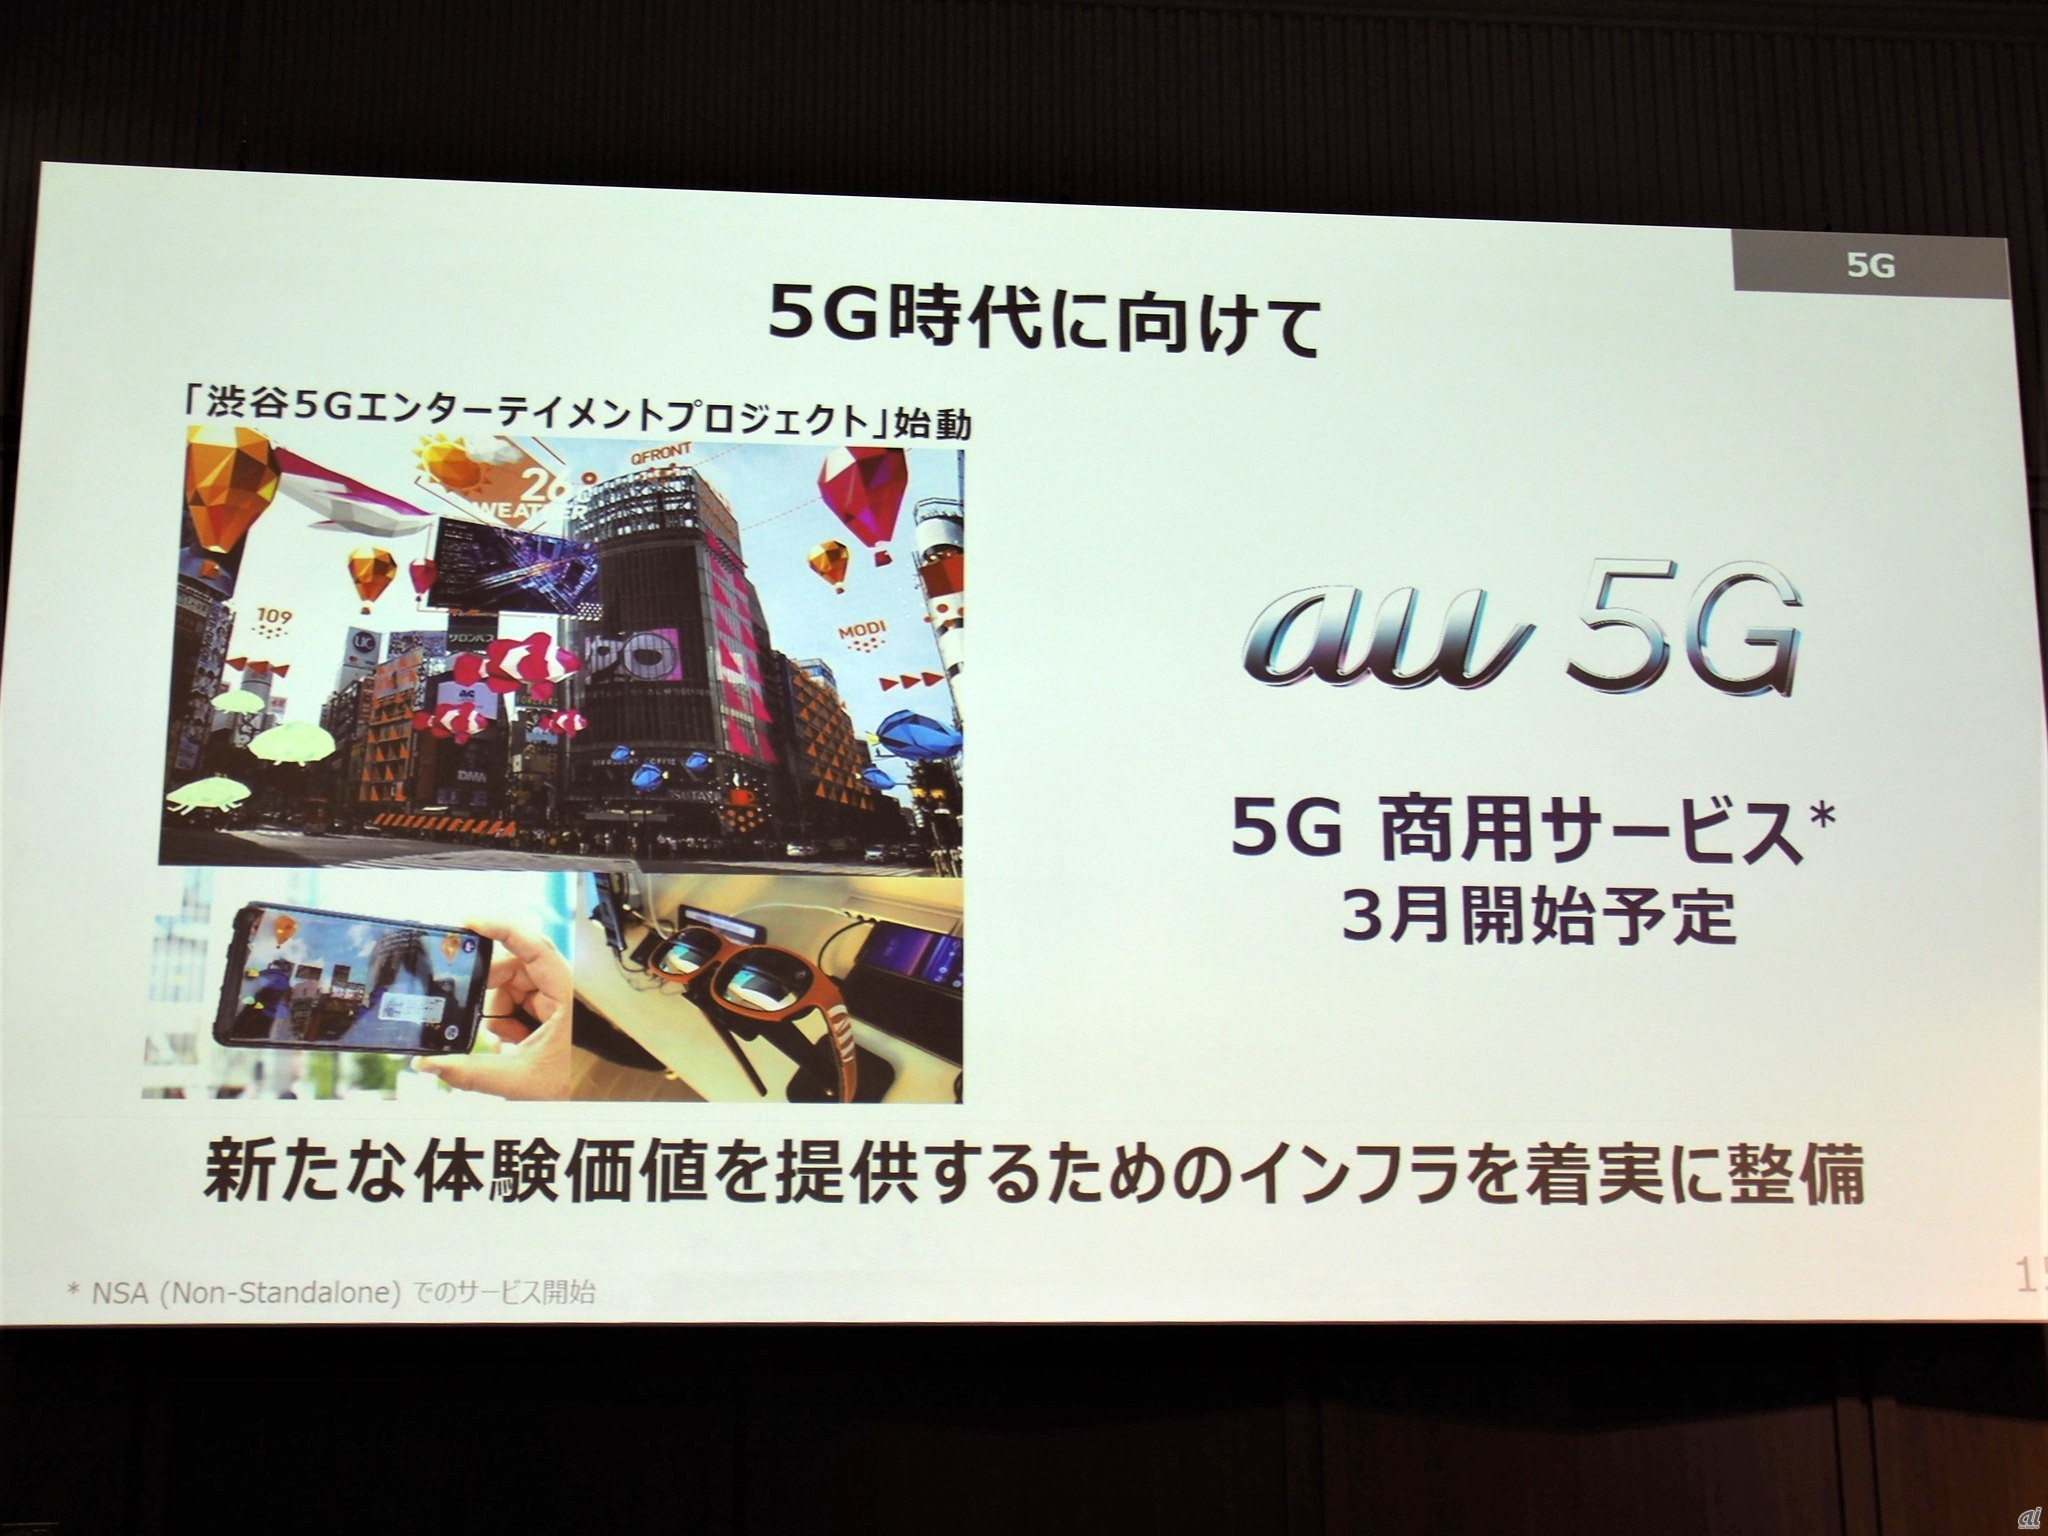 KDDI has stated that it will launch a commercial 5G service in March. However, the initial area is not very large